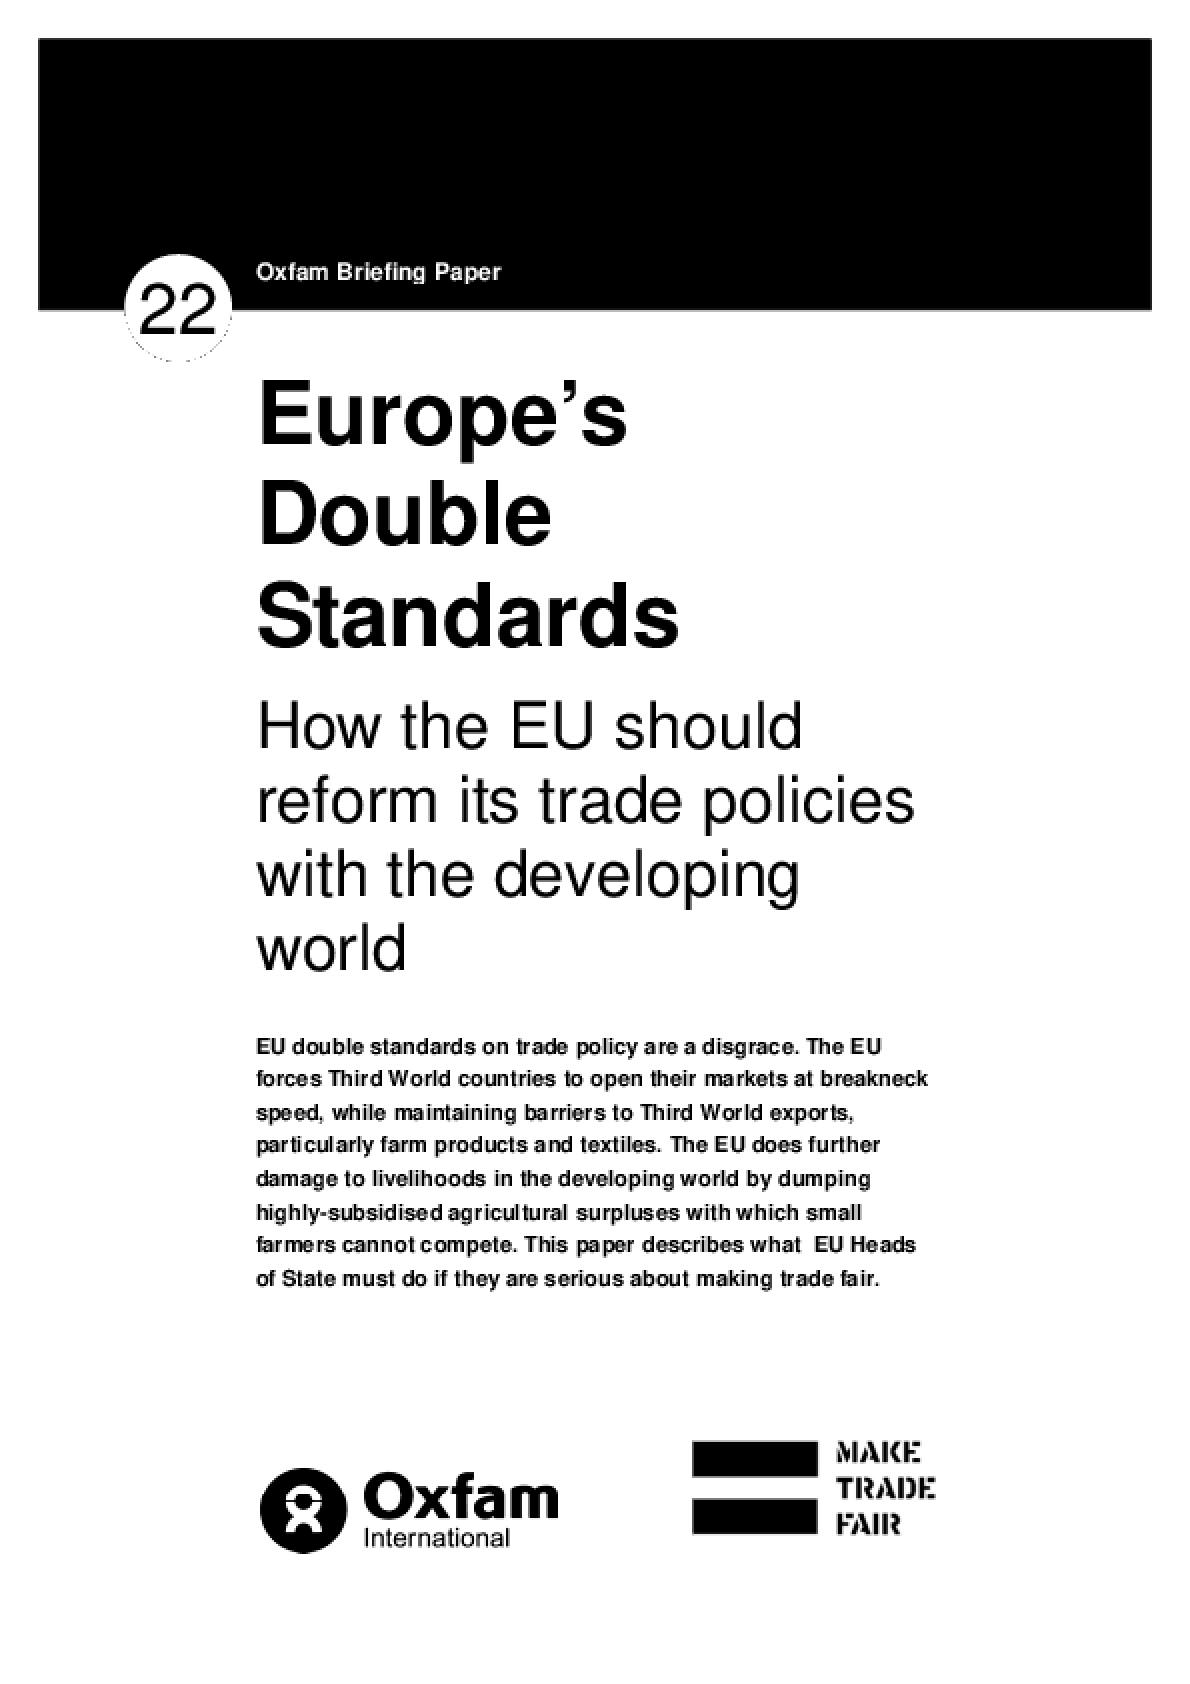 Europe's Double Standards: How the EU Should Reform Its Trade Policies with the Developing World